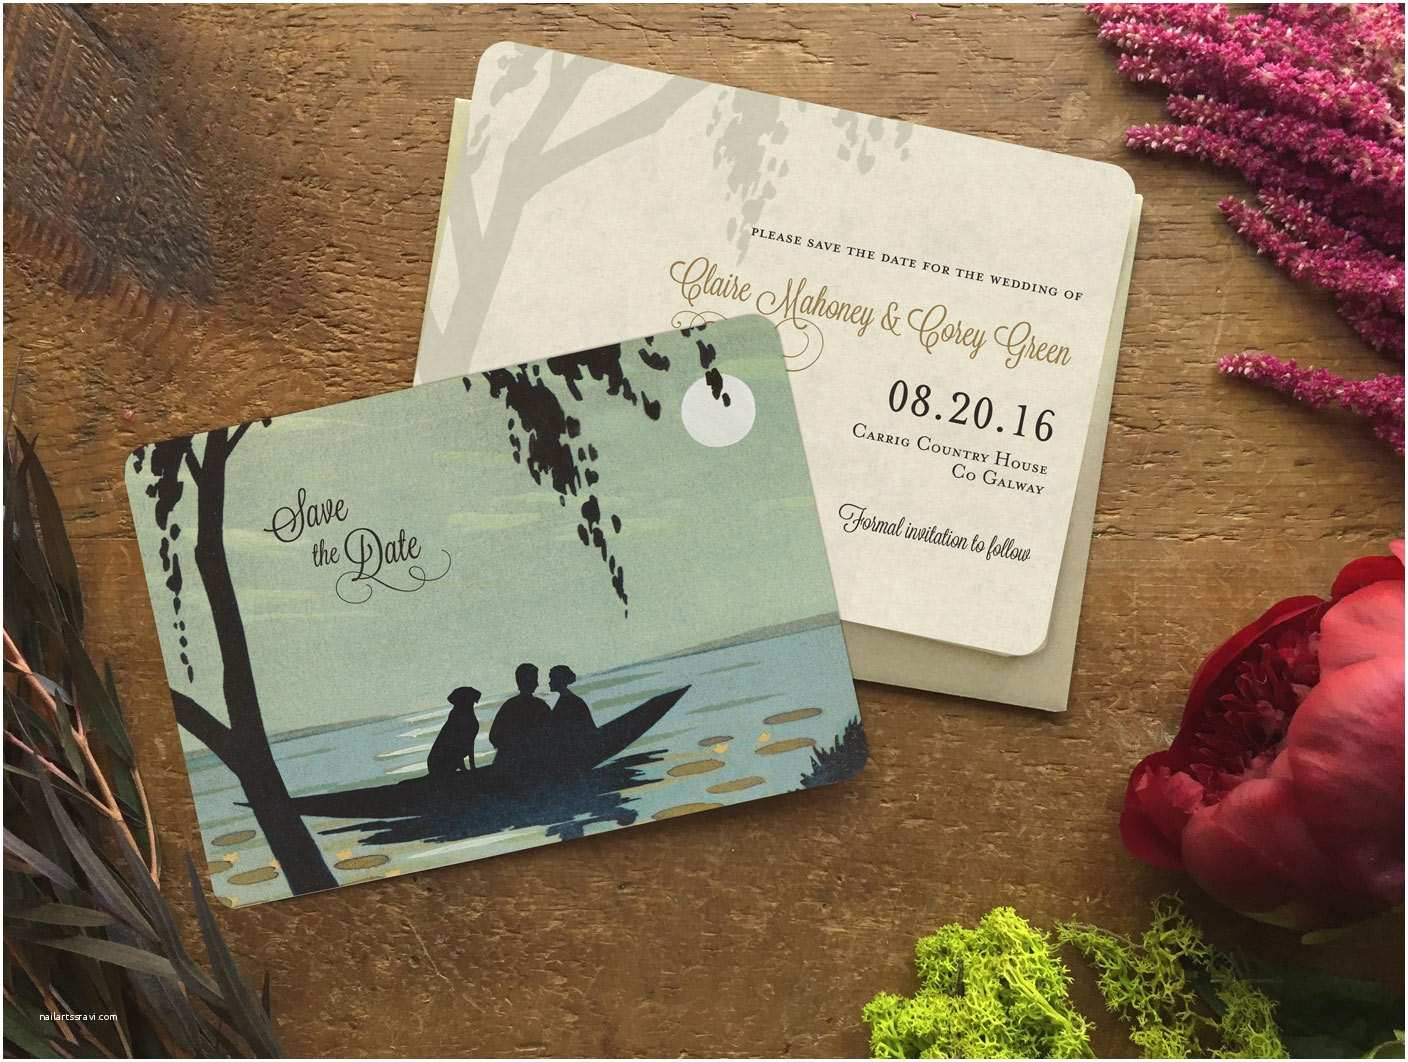 Lake Wedding Invitations Save the Date Postcard Beach Wedding Invitation Lake Wedding